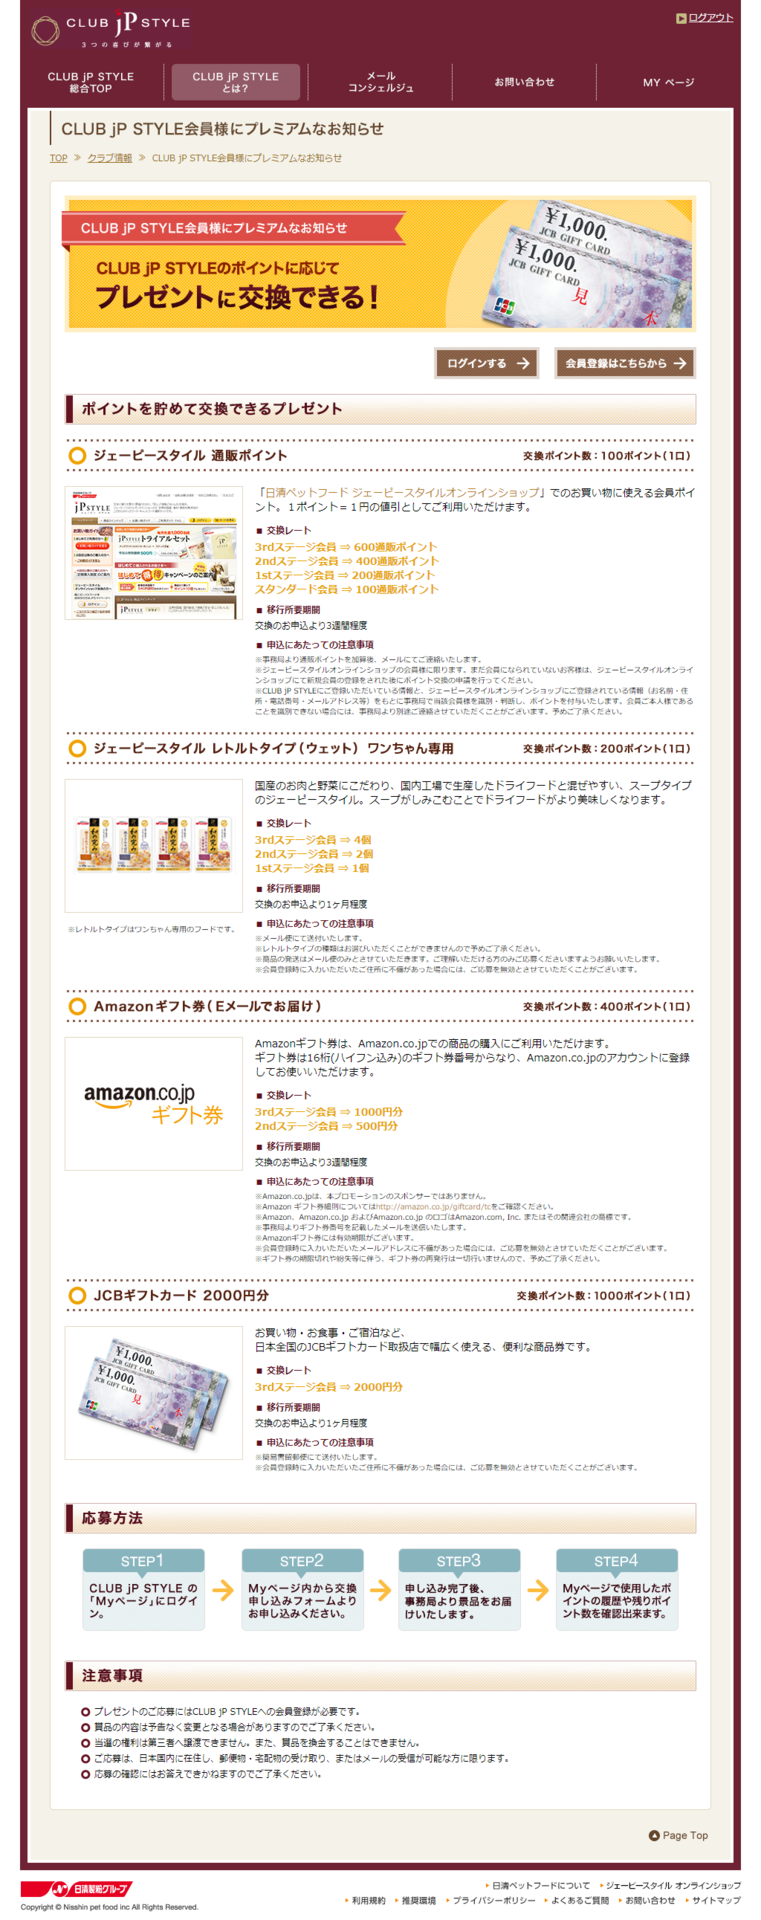 FireShot Capture 2 - クラブ情報 I クラブ ジェーピースタイ_ - http___www.club-jpstyle.com_about_club_point_index.html.png